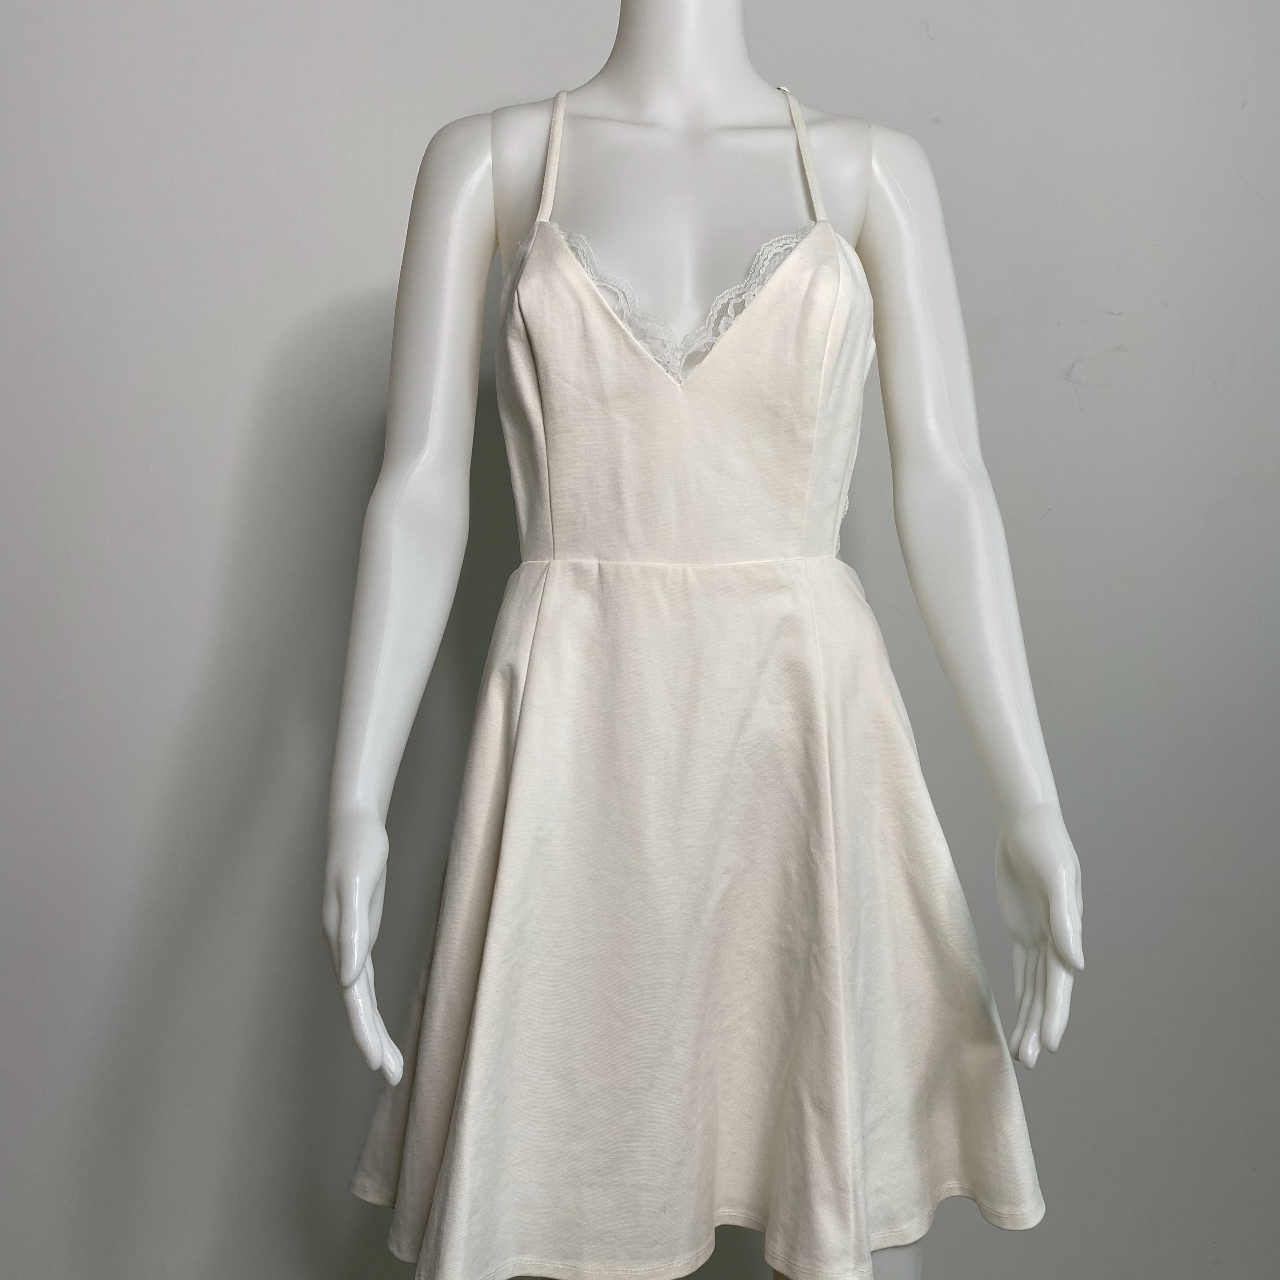 Product Image 1 - Adorable and trendy white dress